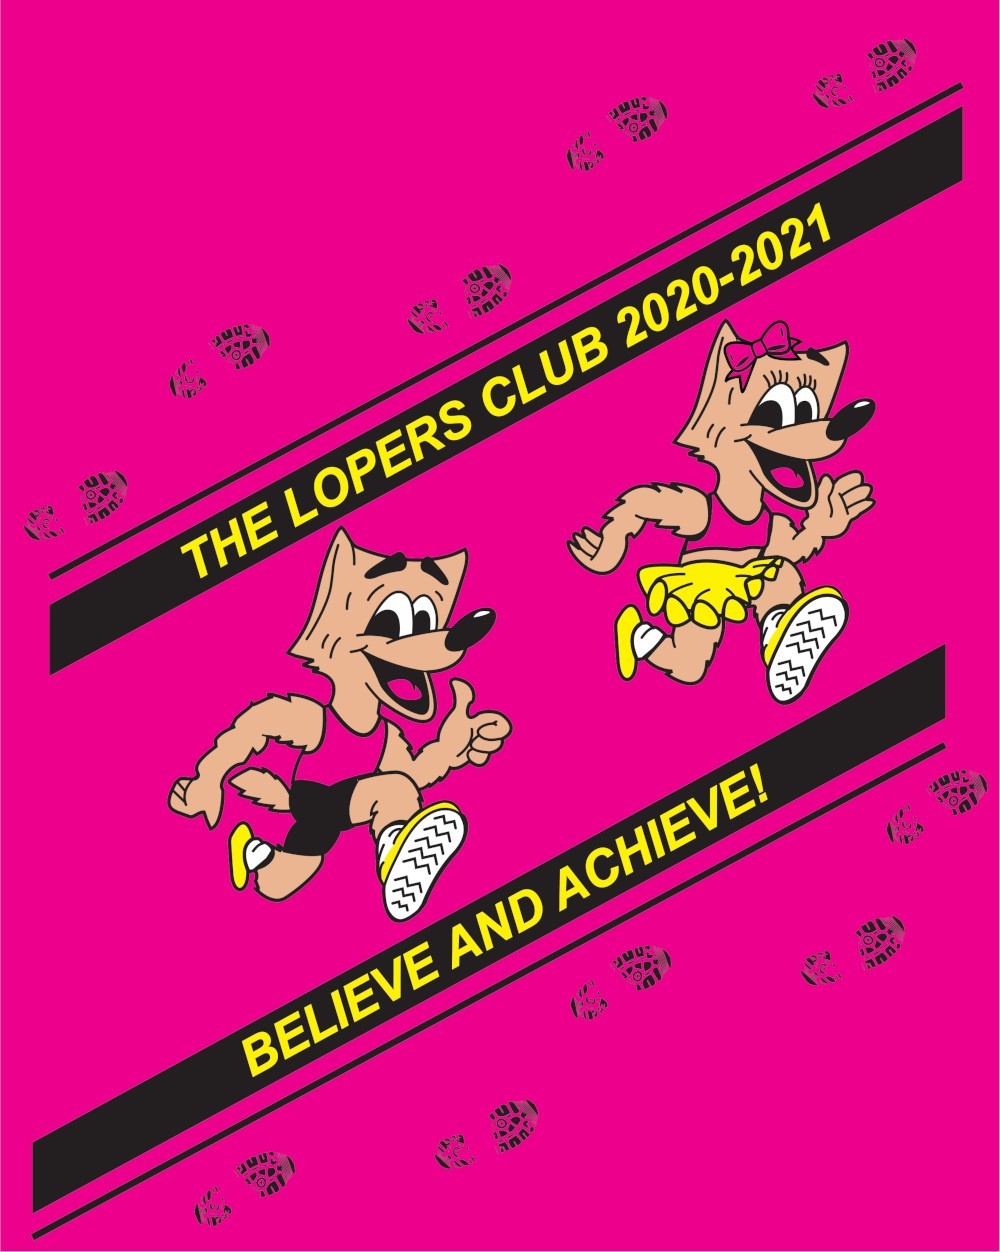 Lopers Club- next training day is May 9th